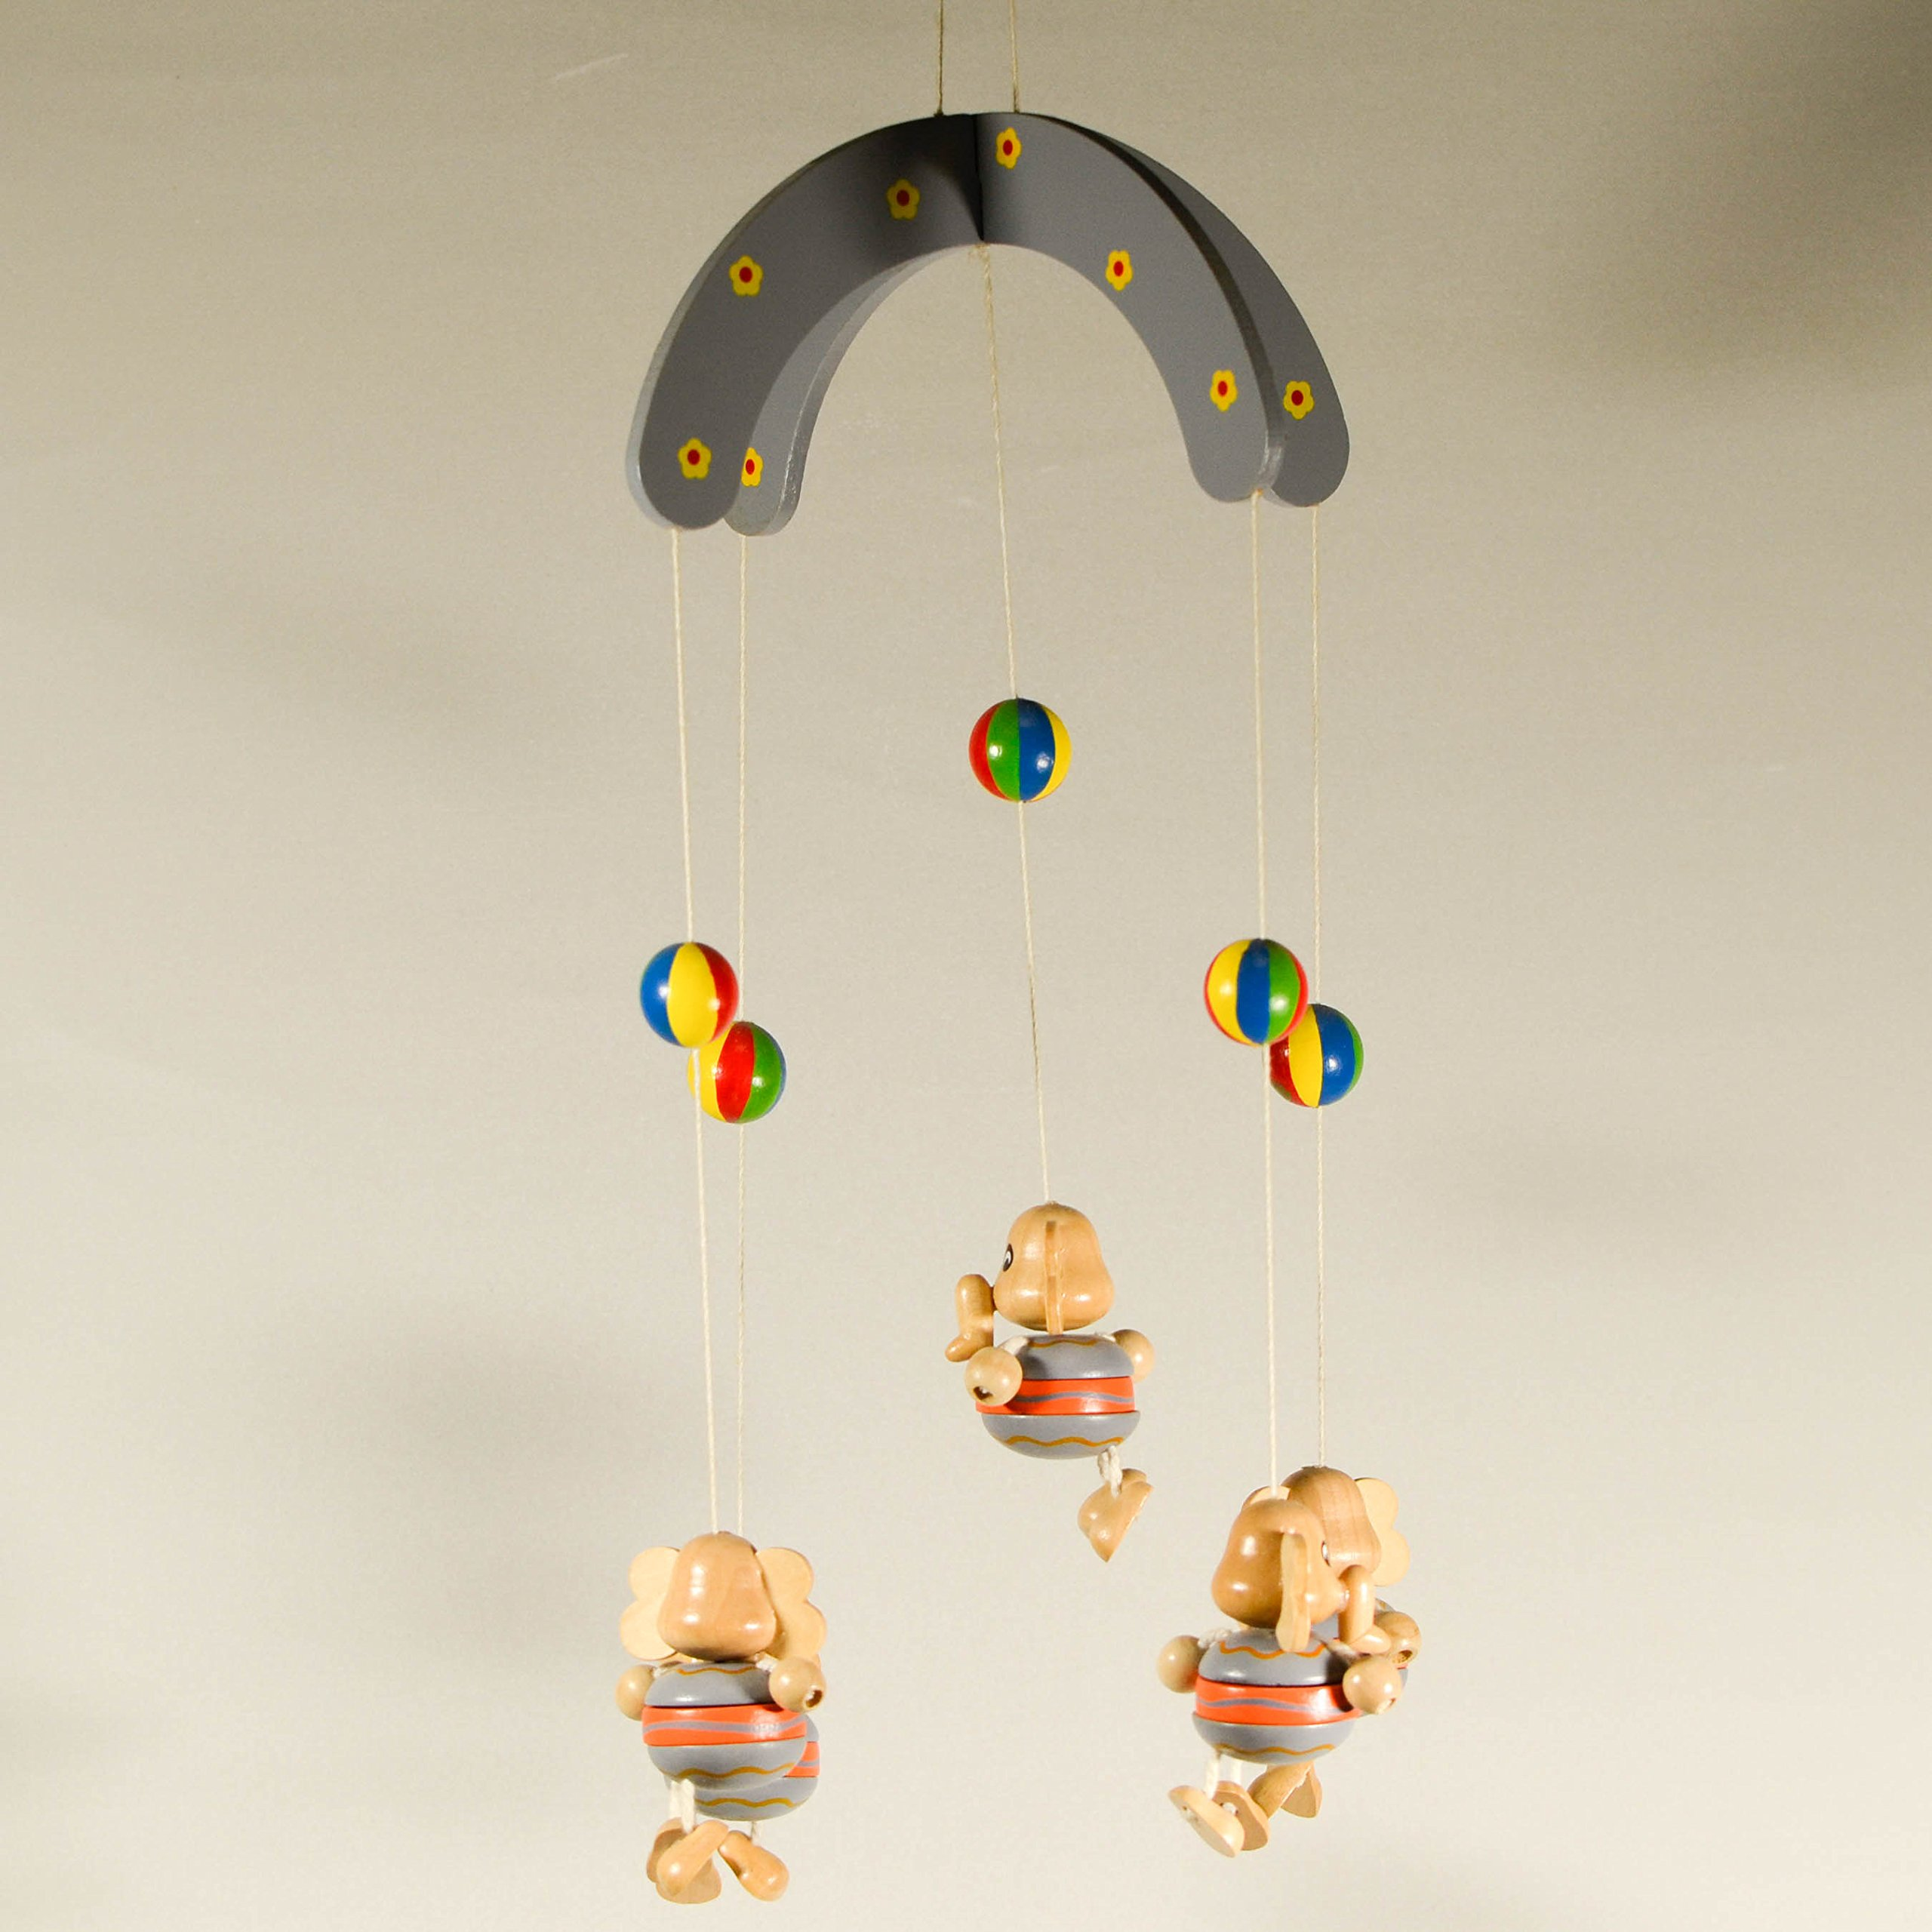 Wooden Hanging Mobile with Elephants - Nursery Decor - Animal Mobile Ornament - Baby Room Decor